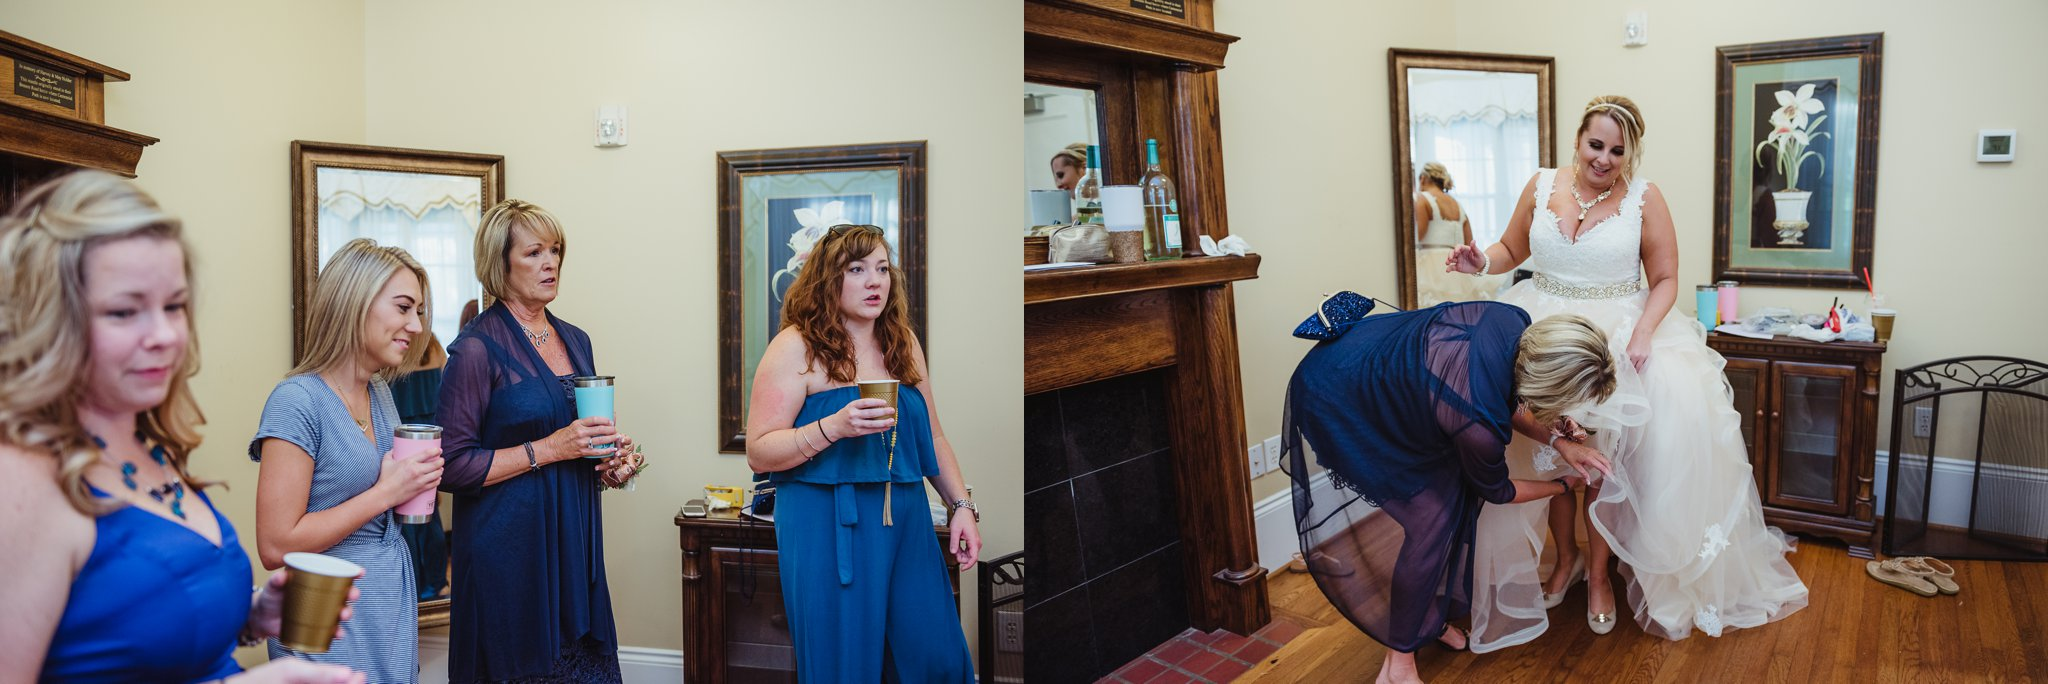 The bride had lots of help getting ready at her intimate wedding in Raleigh, photos by Rose Trail Images.